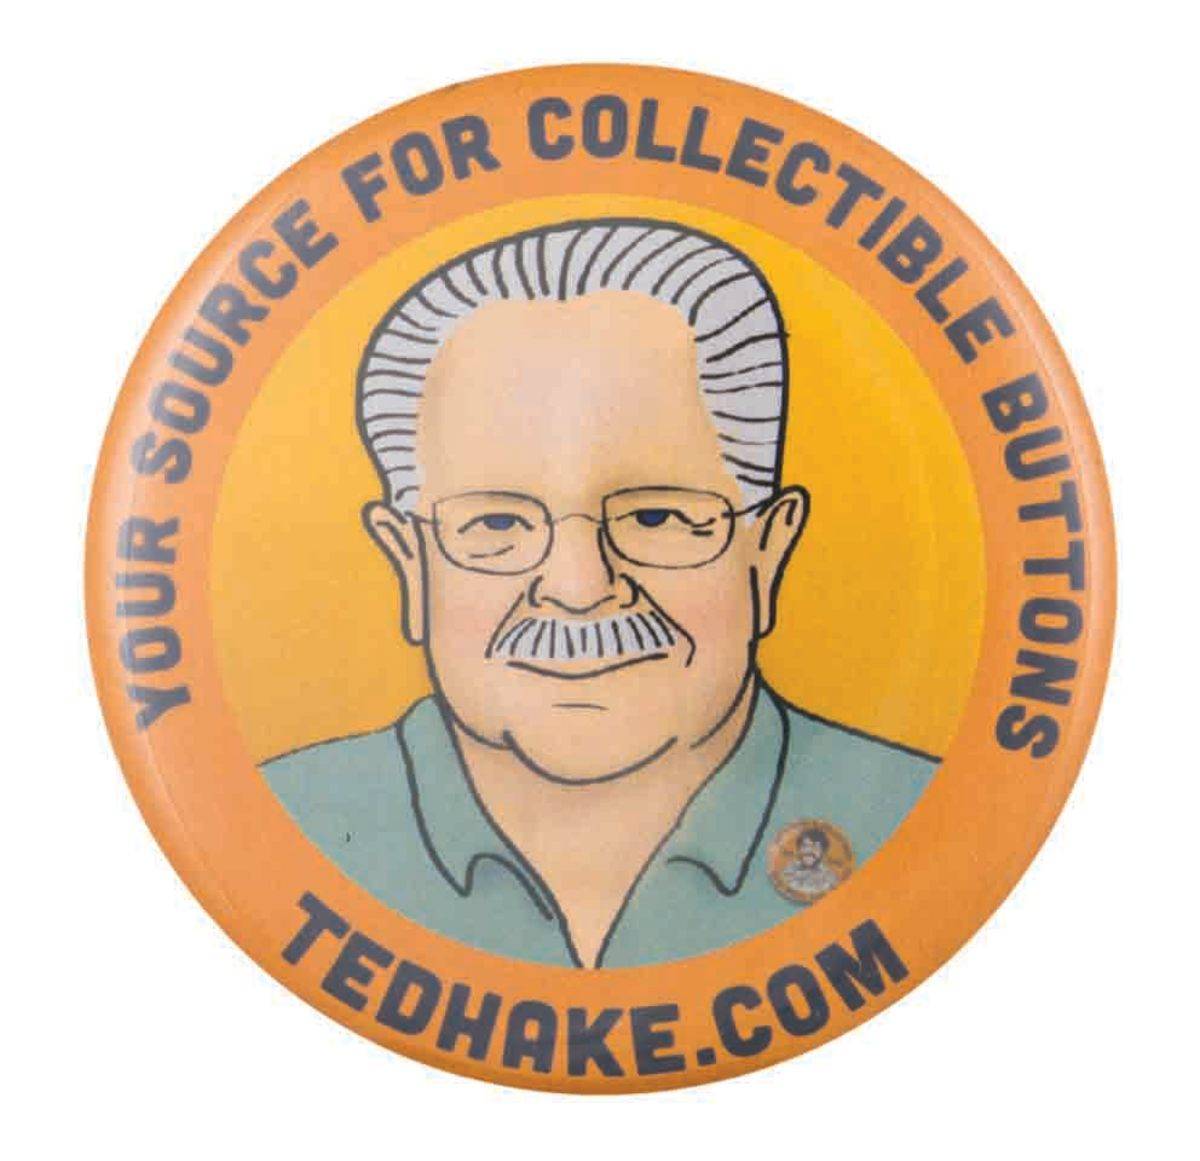 Ted Hake button, 2014